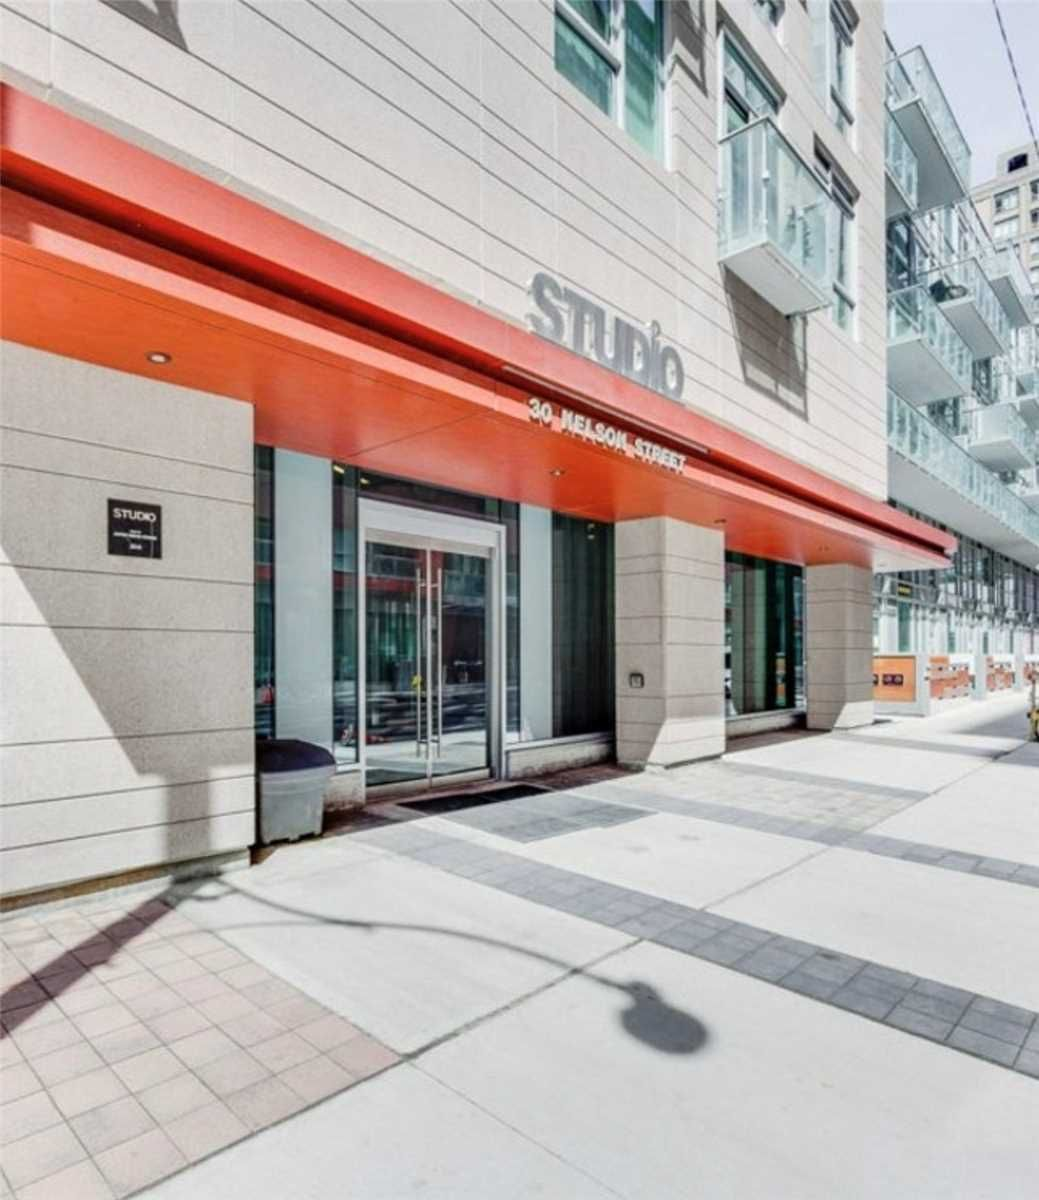 30 Nelson St, unit 1410 for rent in Toronto - image #1